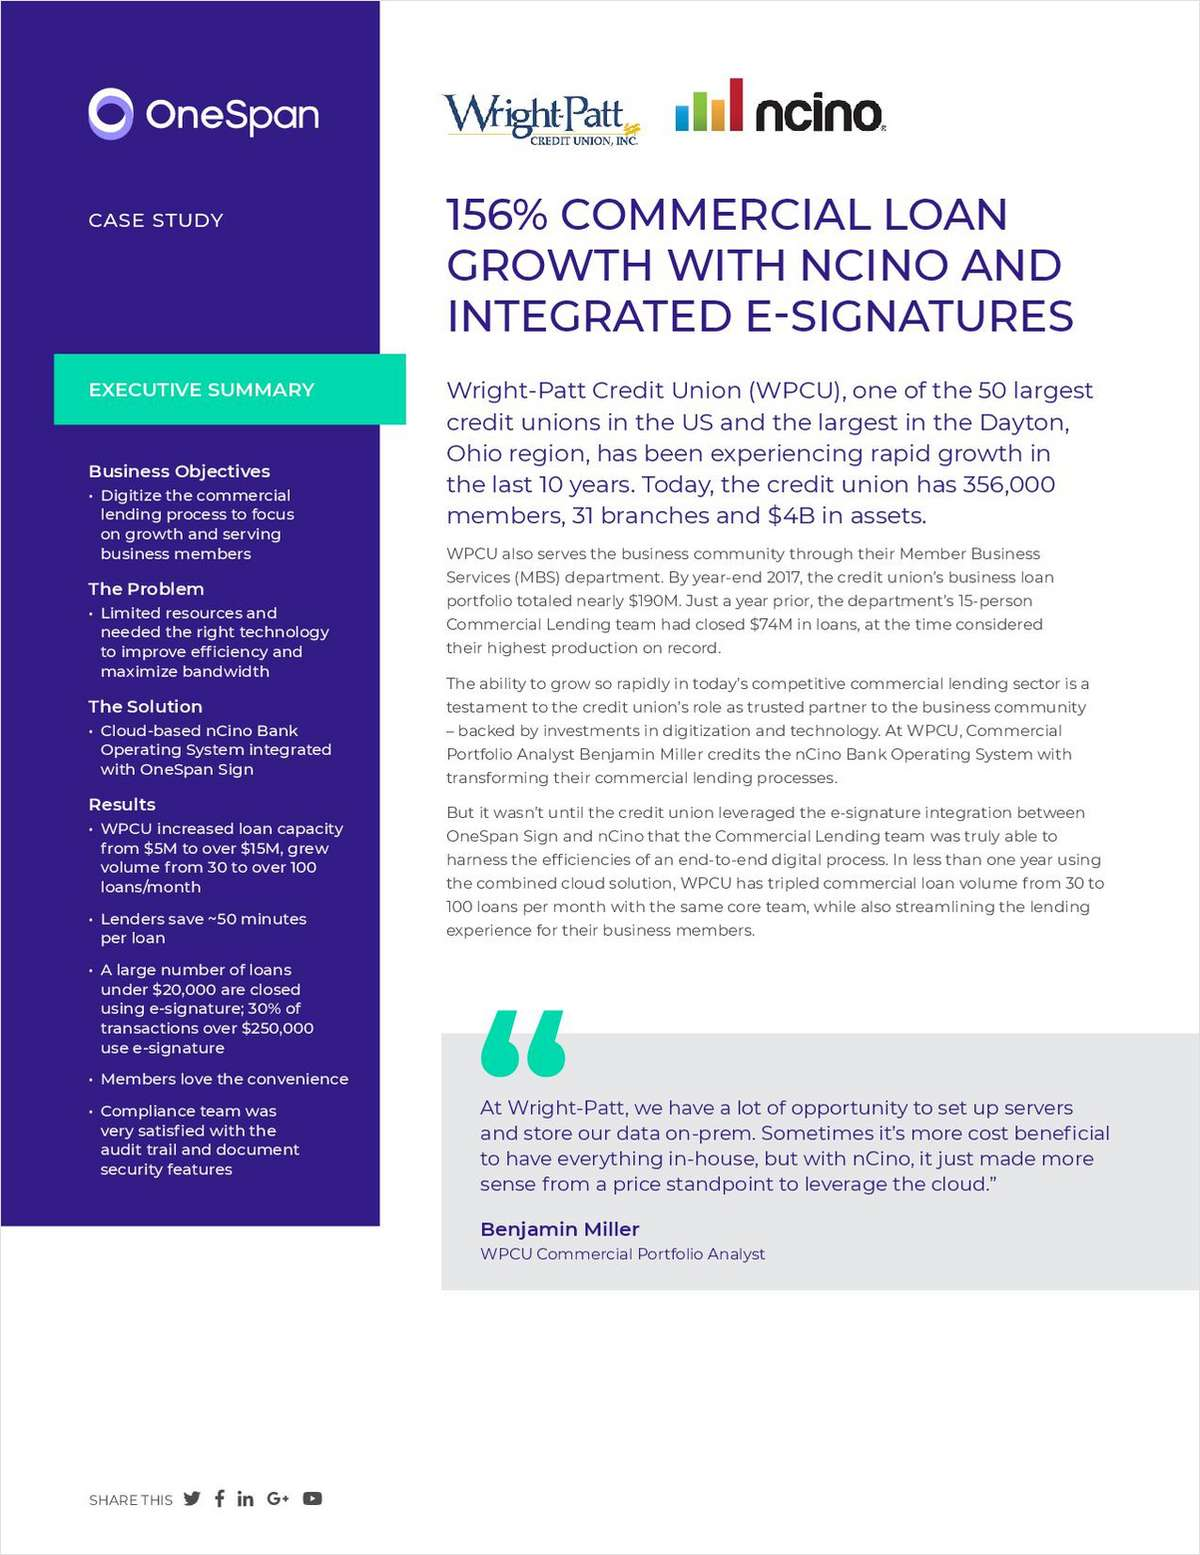 Tripling Commercial Lending Capacity: How One of the Biggest Credit Unions Transformed